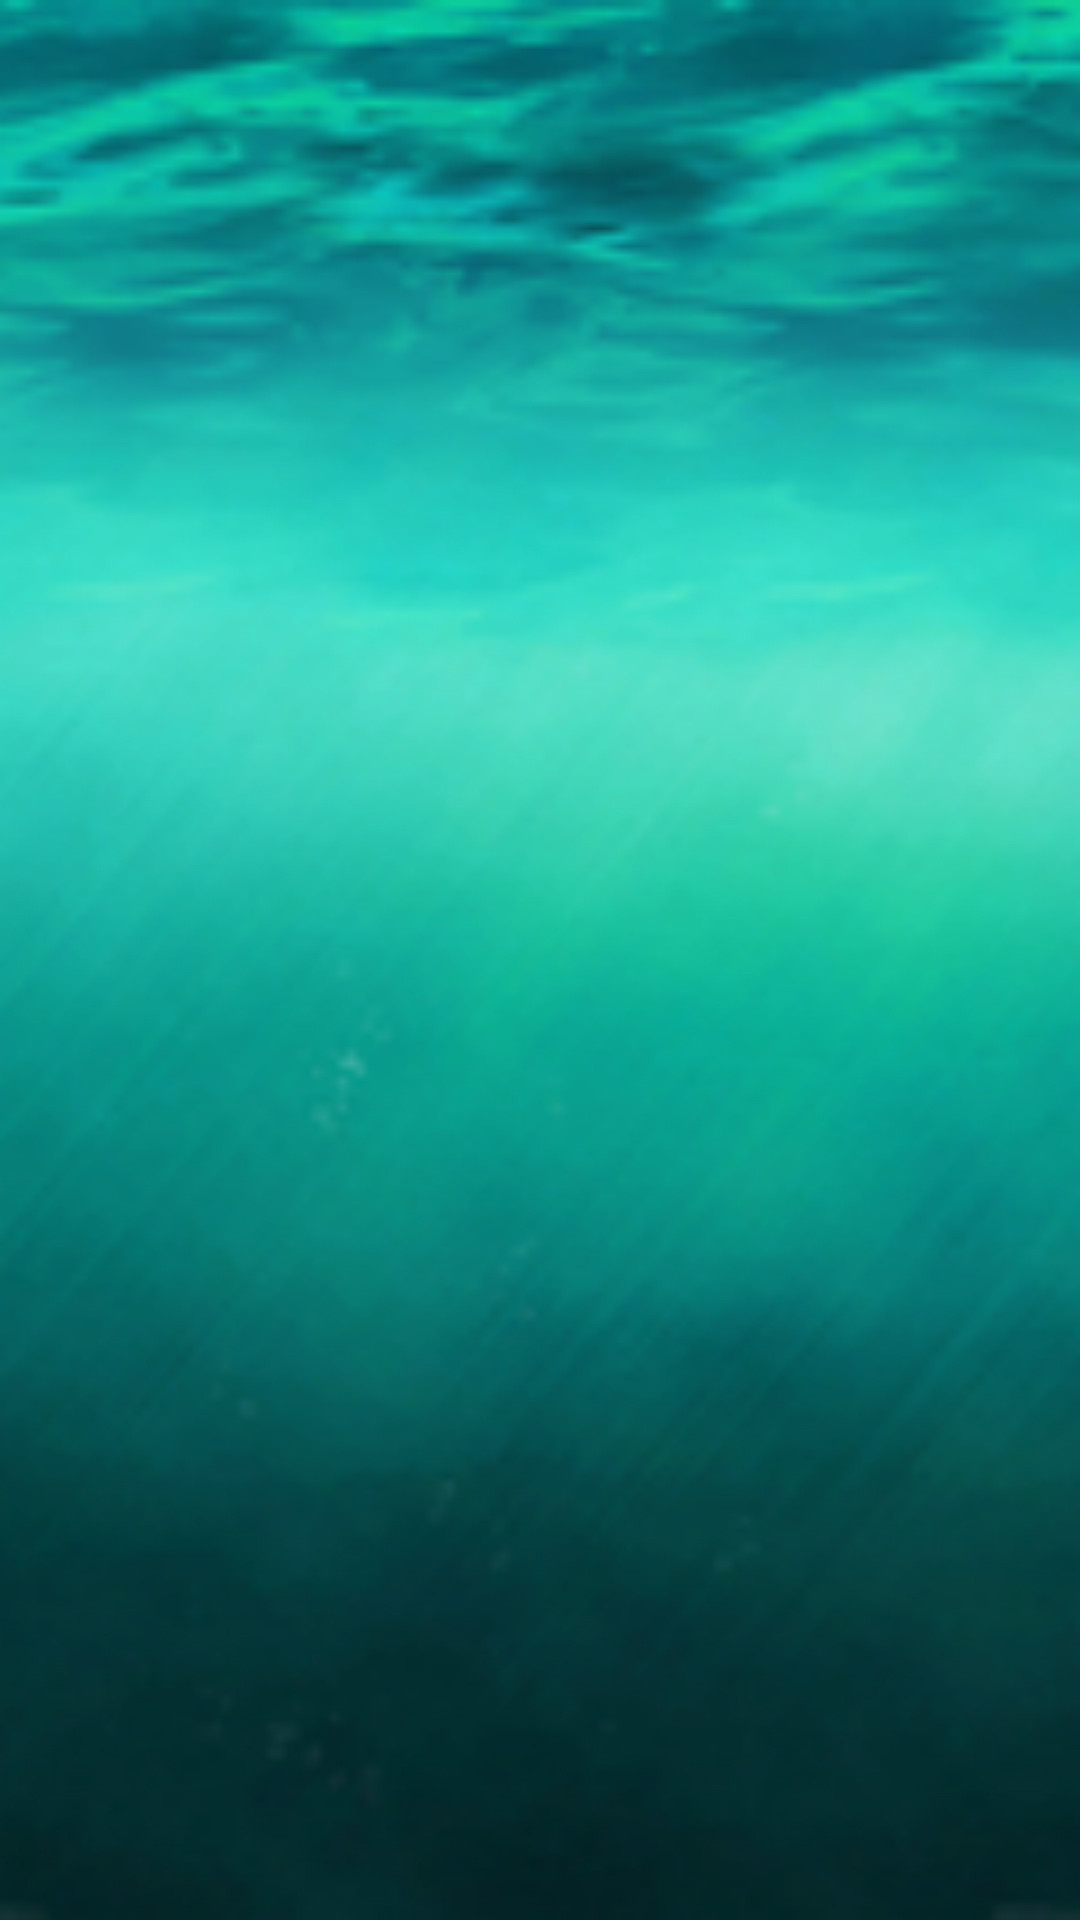 1080x1920 iOS8 Ocean Undersea Pure Clear Background iPhone 8 wallpaper